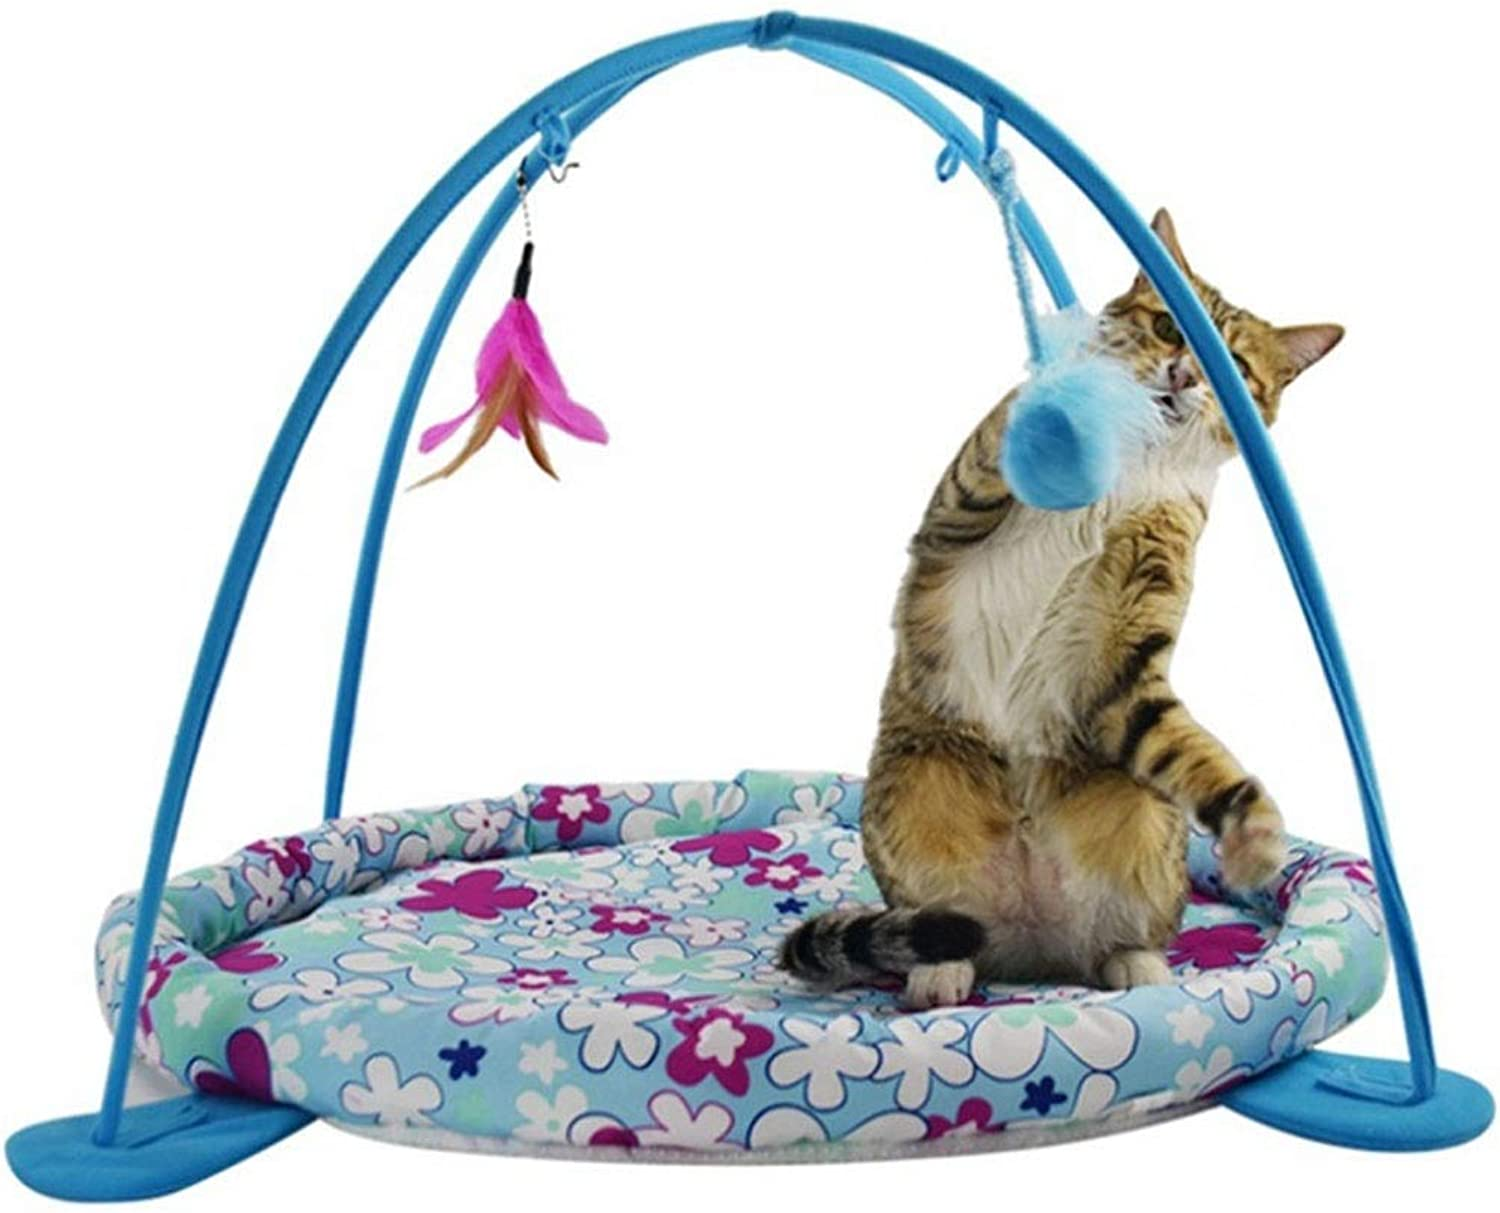 Pet Supplies Cat Bed Cat Hammock Toy Exercise Playful Bed Small Animal Beds (color   bluee, Size   OneSize)